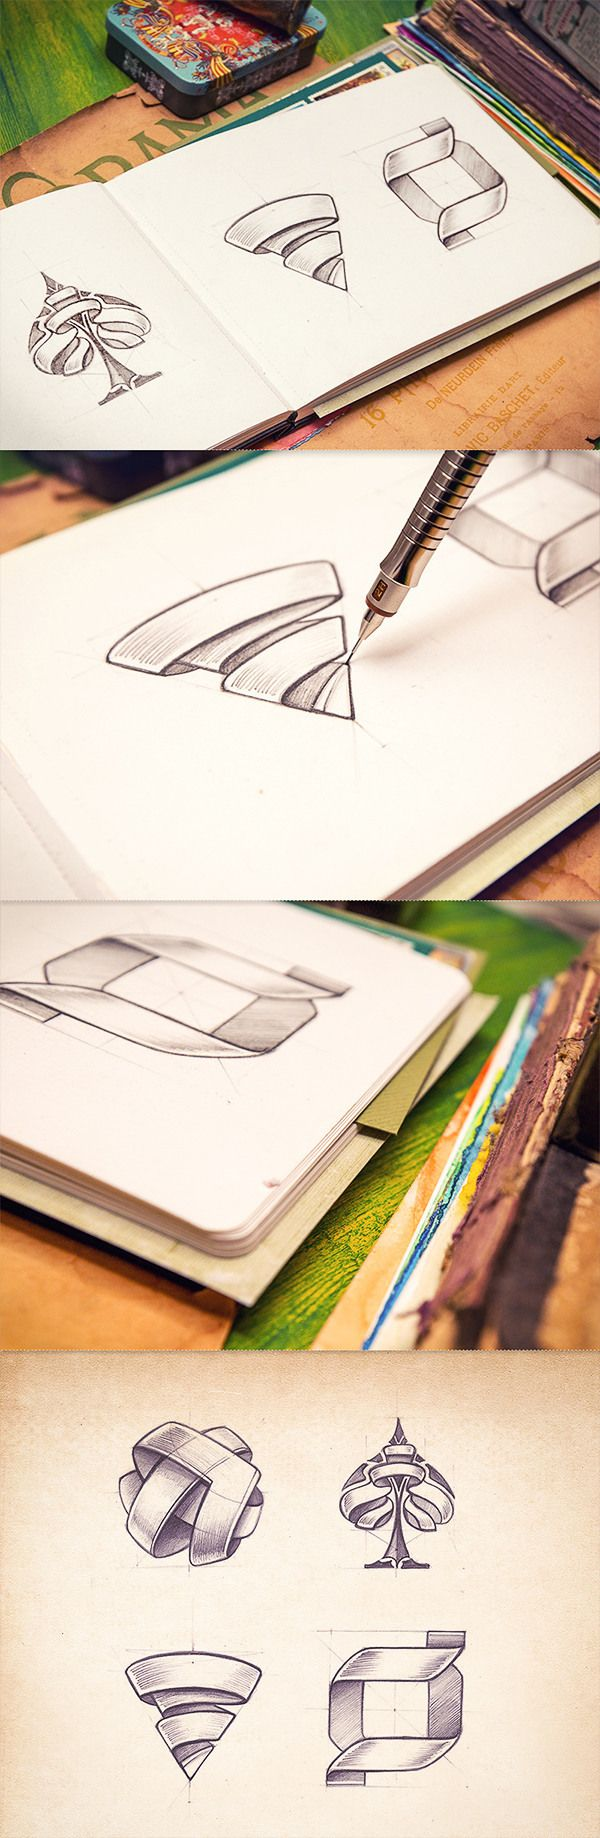 Sketchbook by Mike